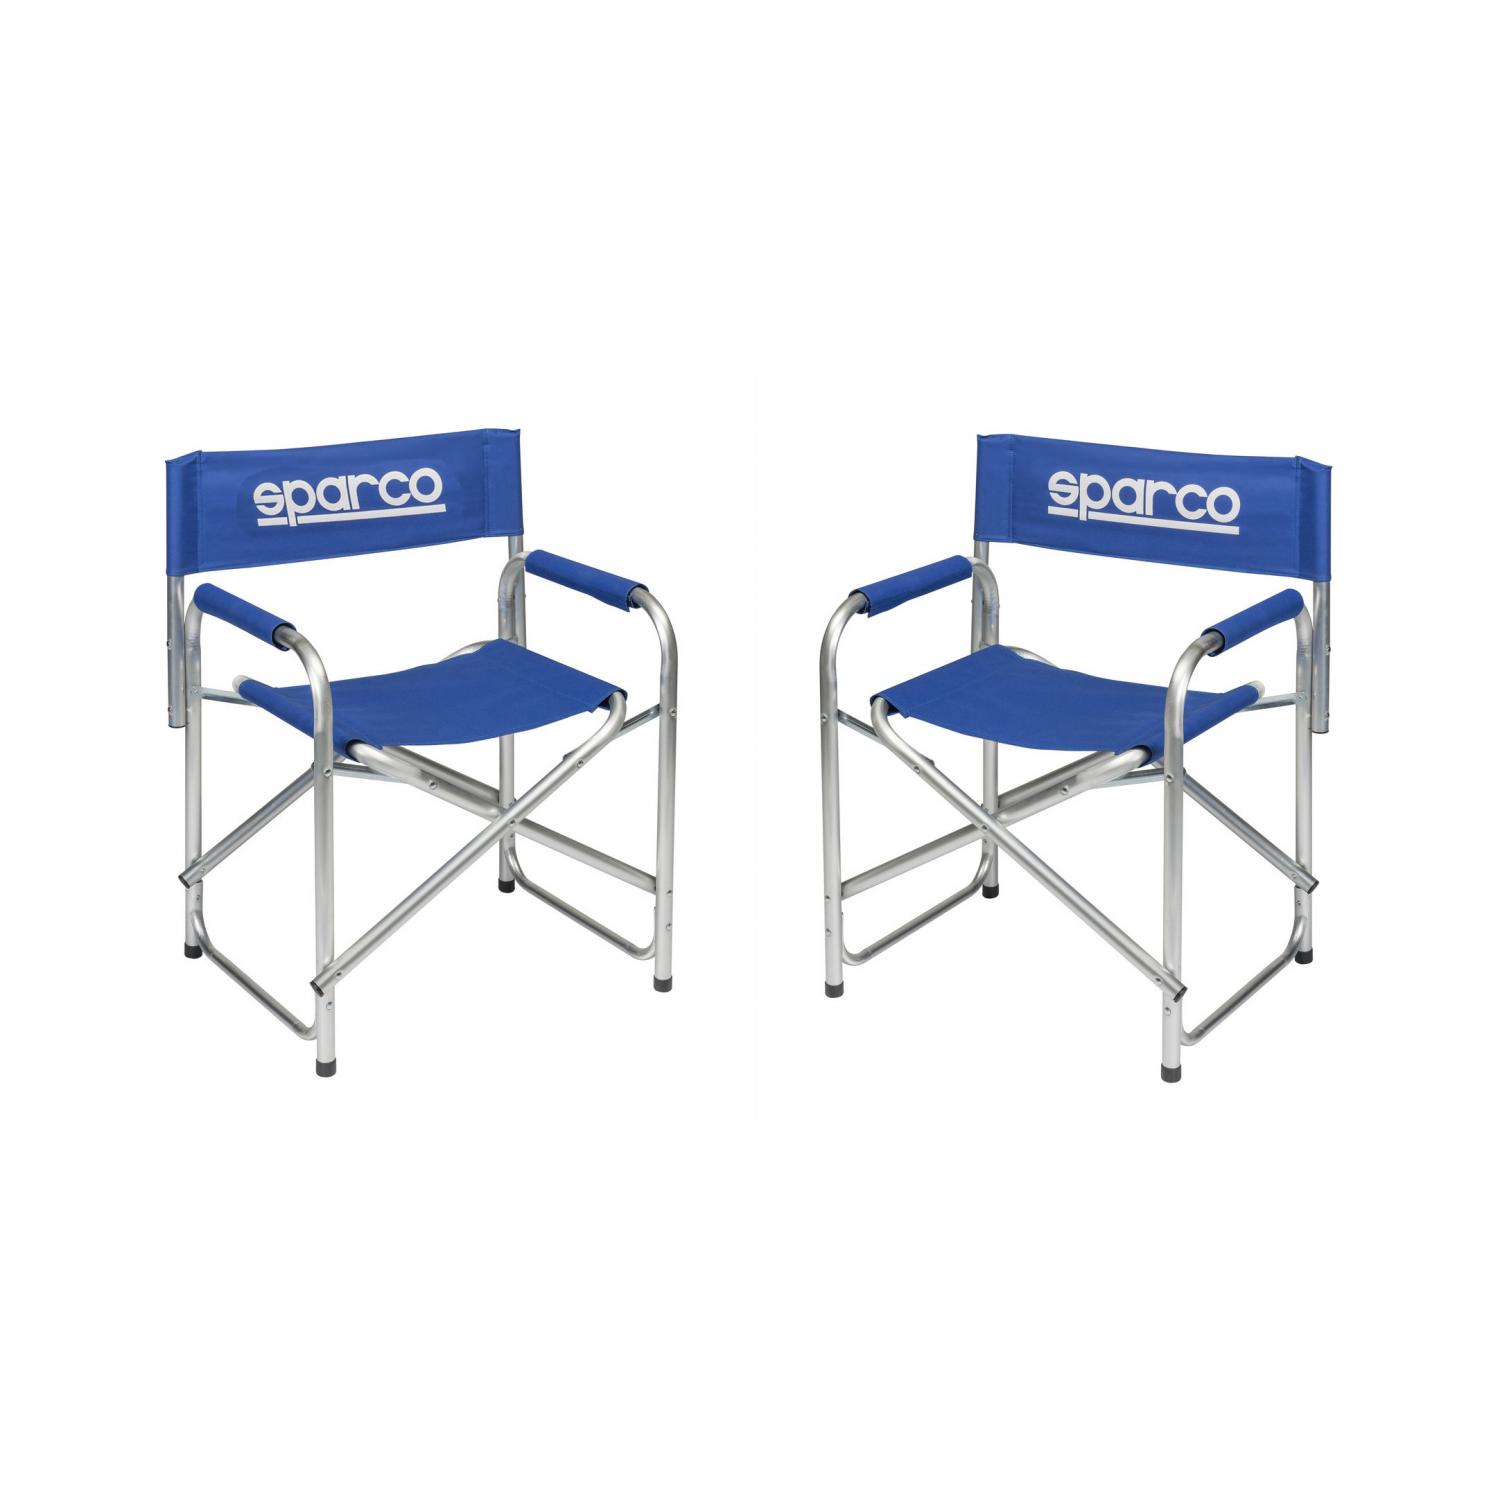 Sparco Directors Chairs  2-pac deal